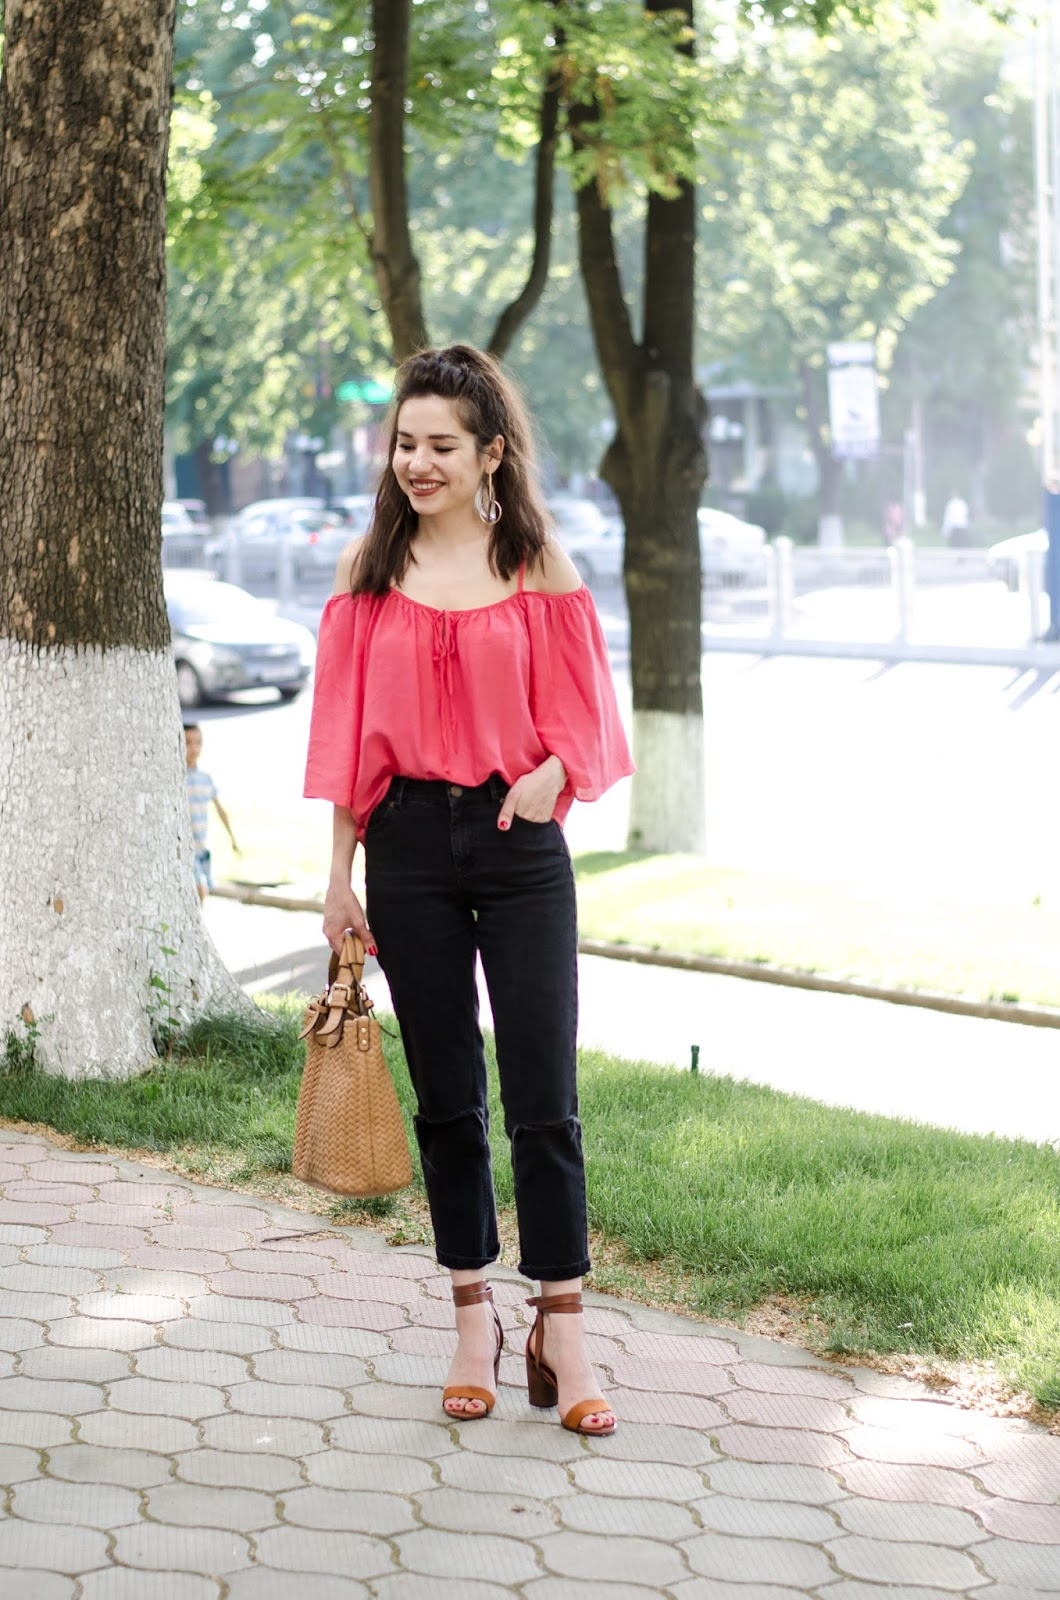 fashion blogger diyorasnotes diyora beta coral top ripped jeans lookoftheday outfit summer2017